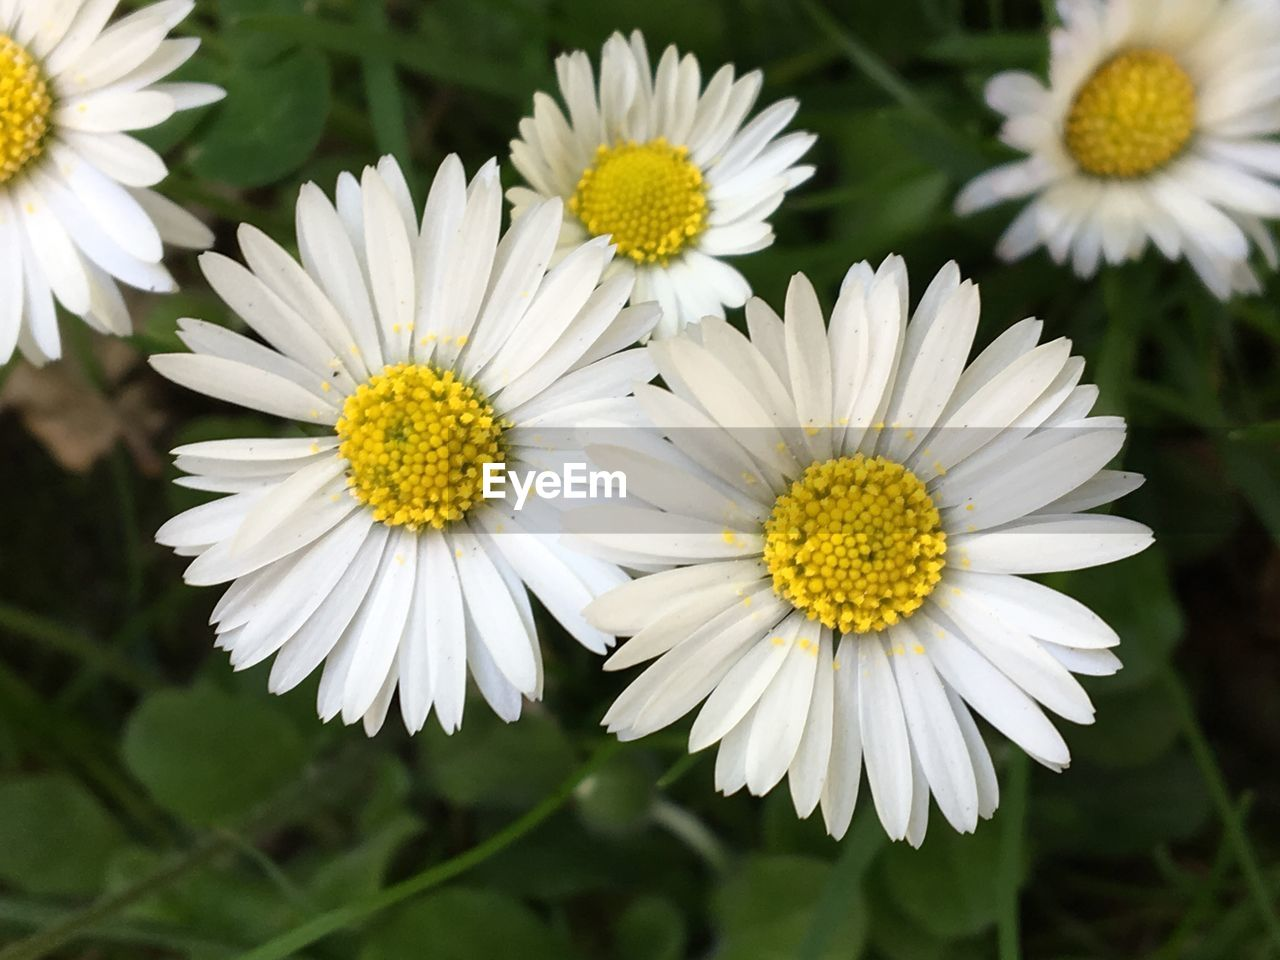 flower, flowering plant, vulnerability, fragility, freshness, plant, petal, growth, beauty in nature, flower head, close-up, inflorescence, white color, yellow, pollen, daisy, focus on foreground, nature, no people, day